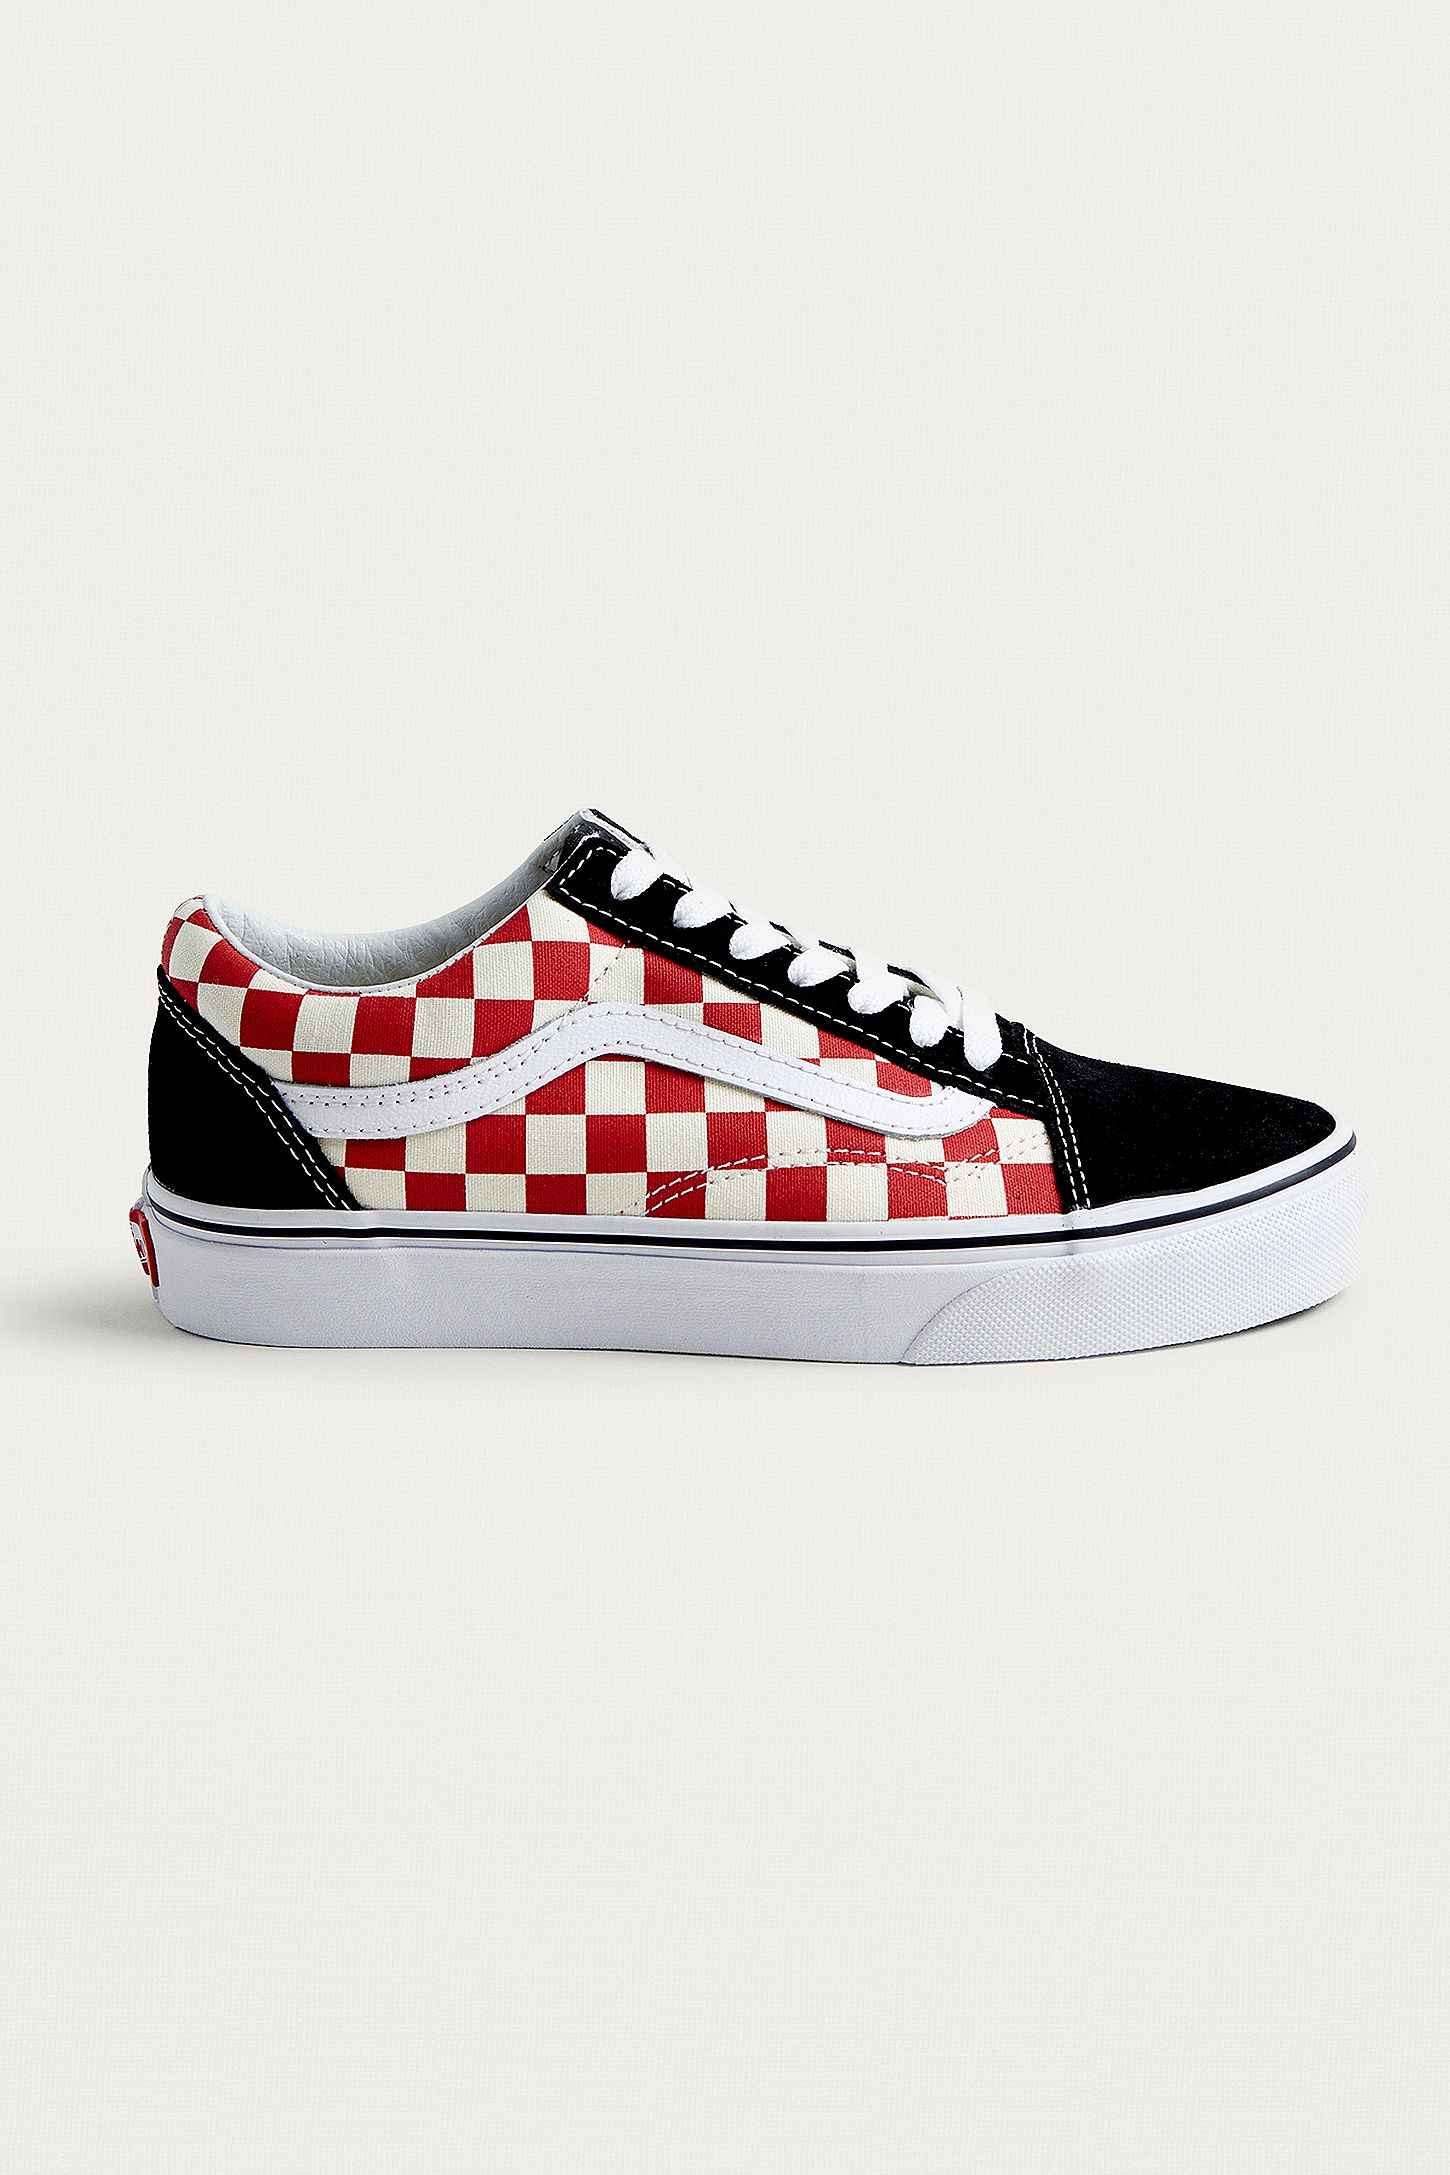 vans old skool rouge damier